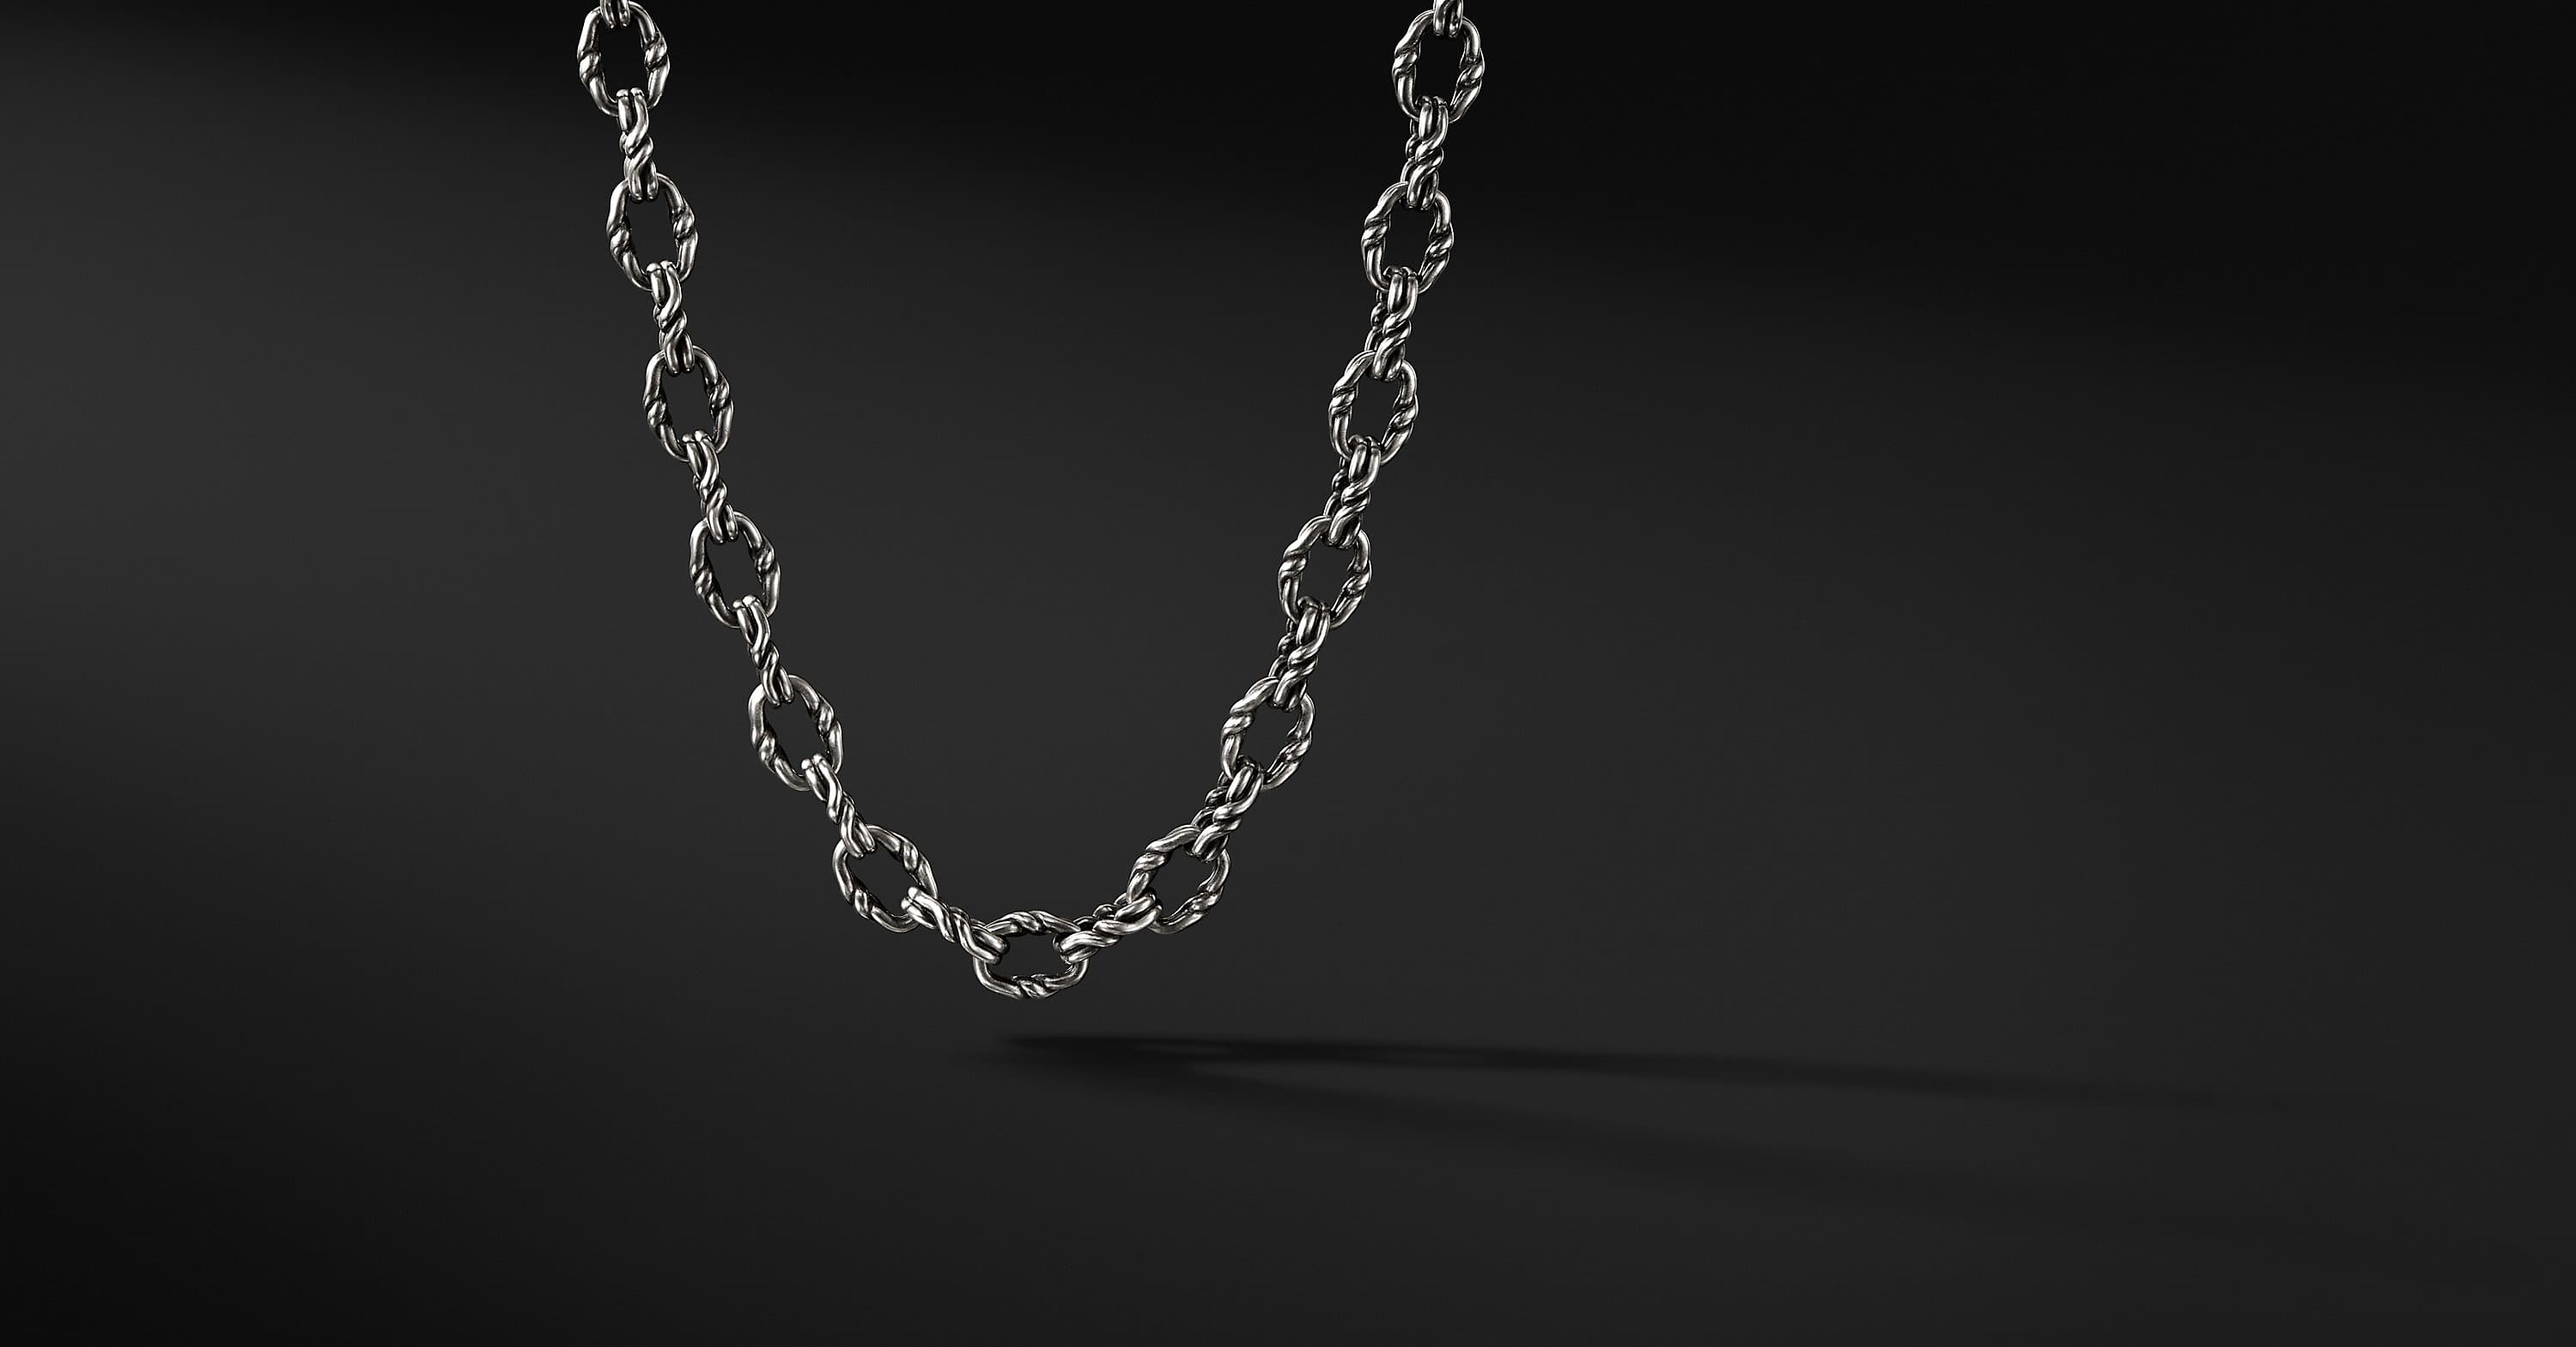 Continuance Small Twisted Cable Chain Necklace